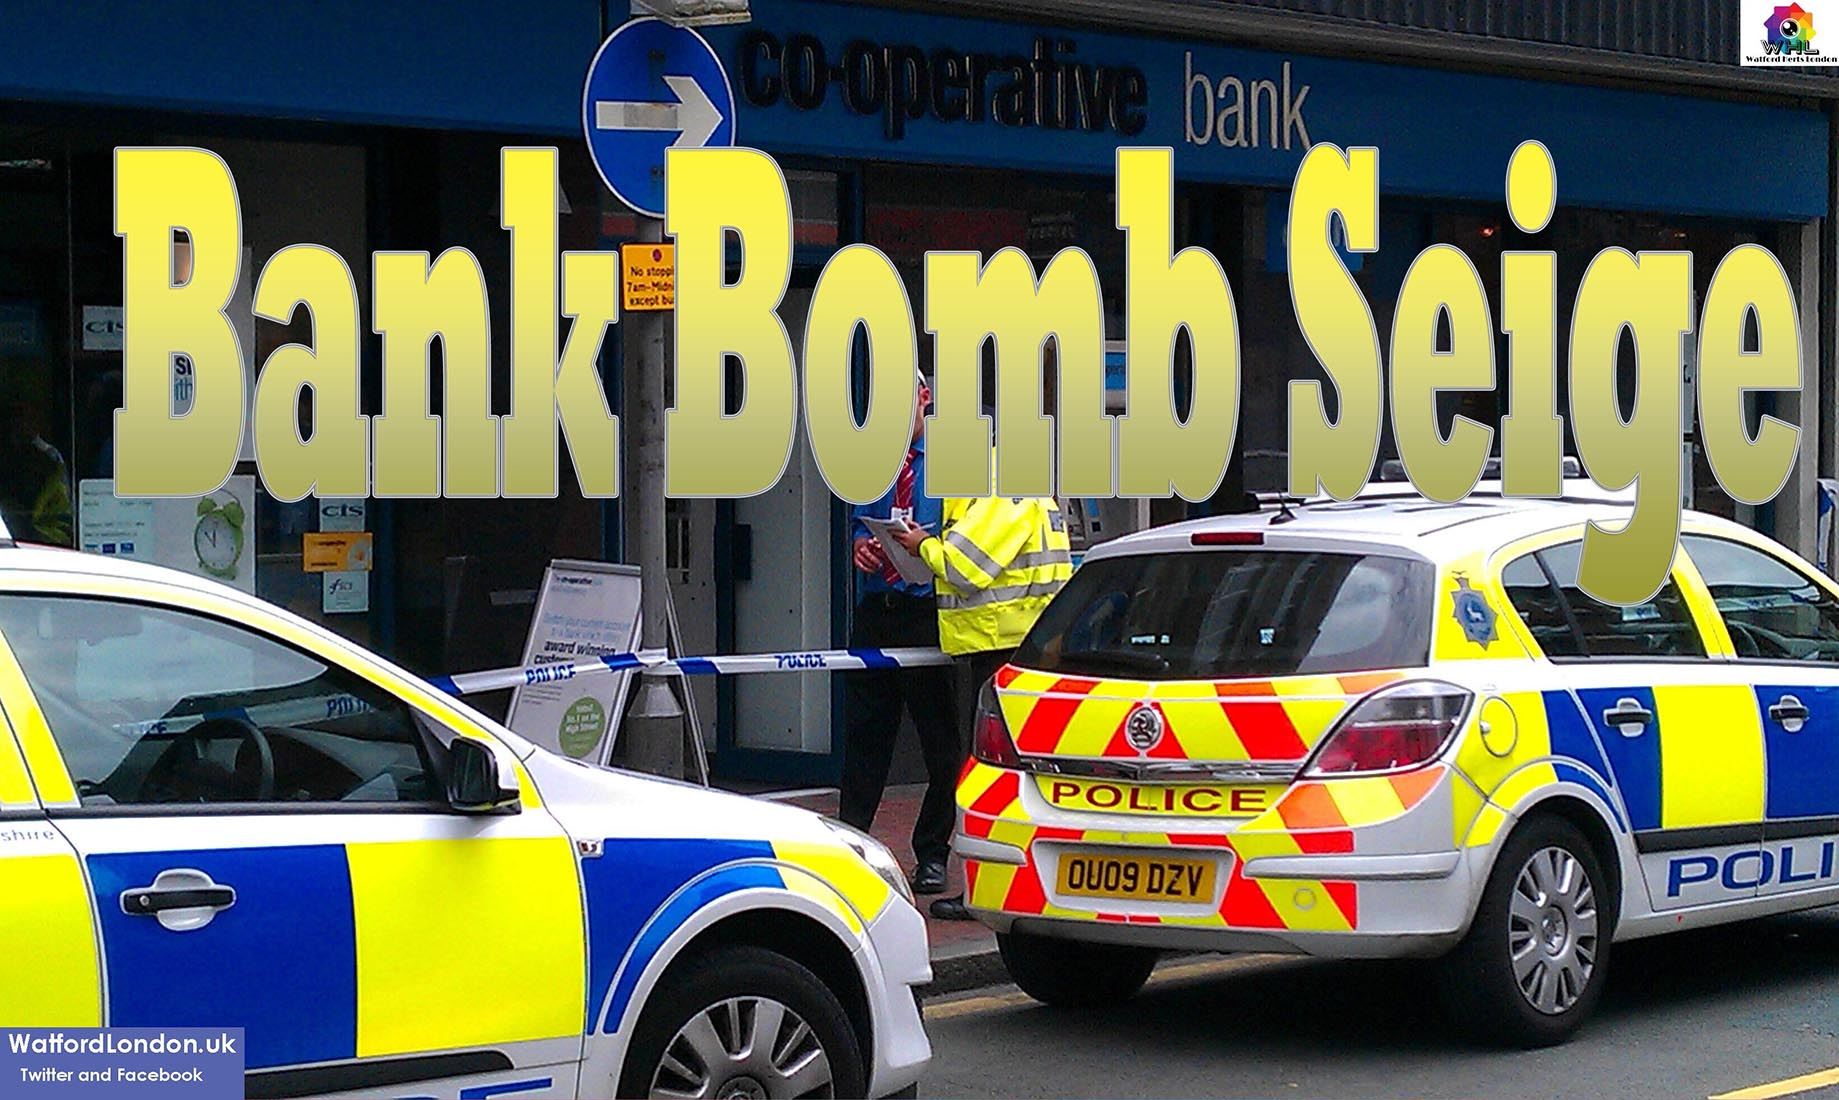 Luton Muslim Men guilty for Bank Bomb Robbery Siege caused Panic in Watford